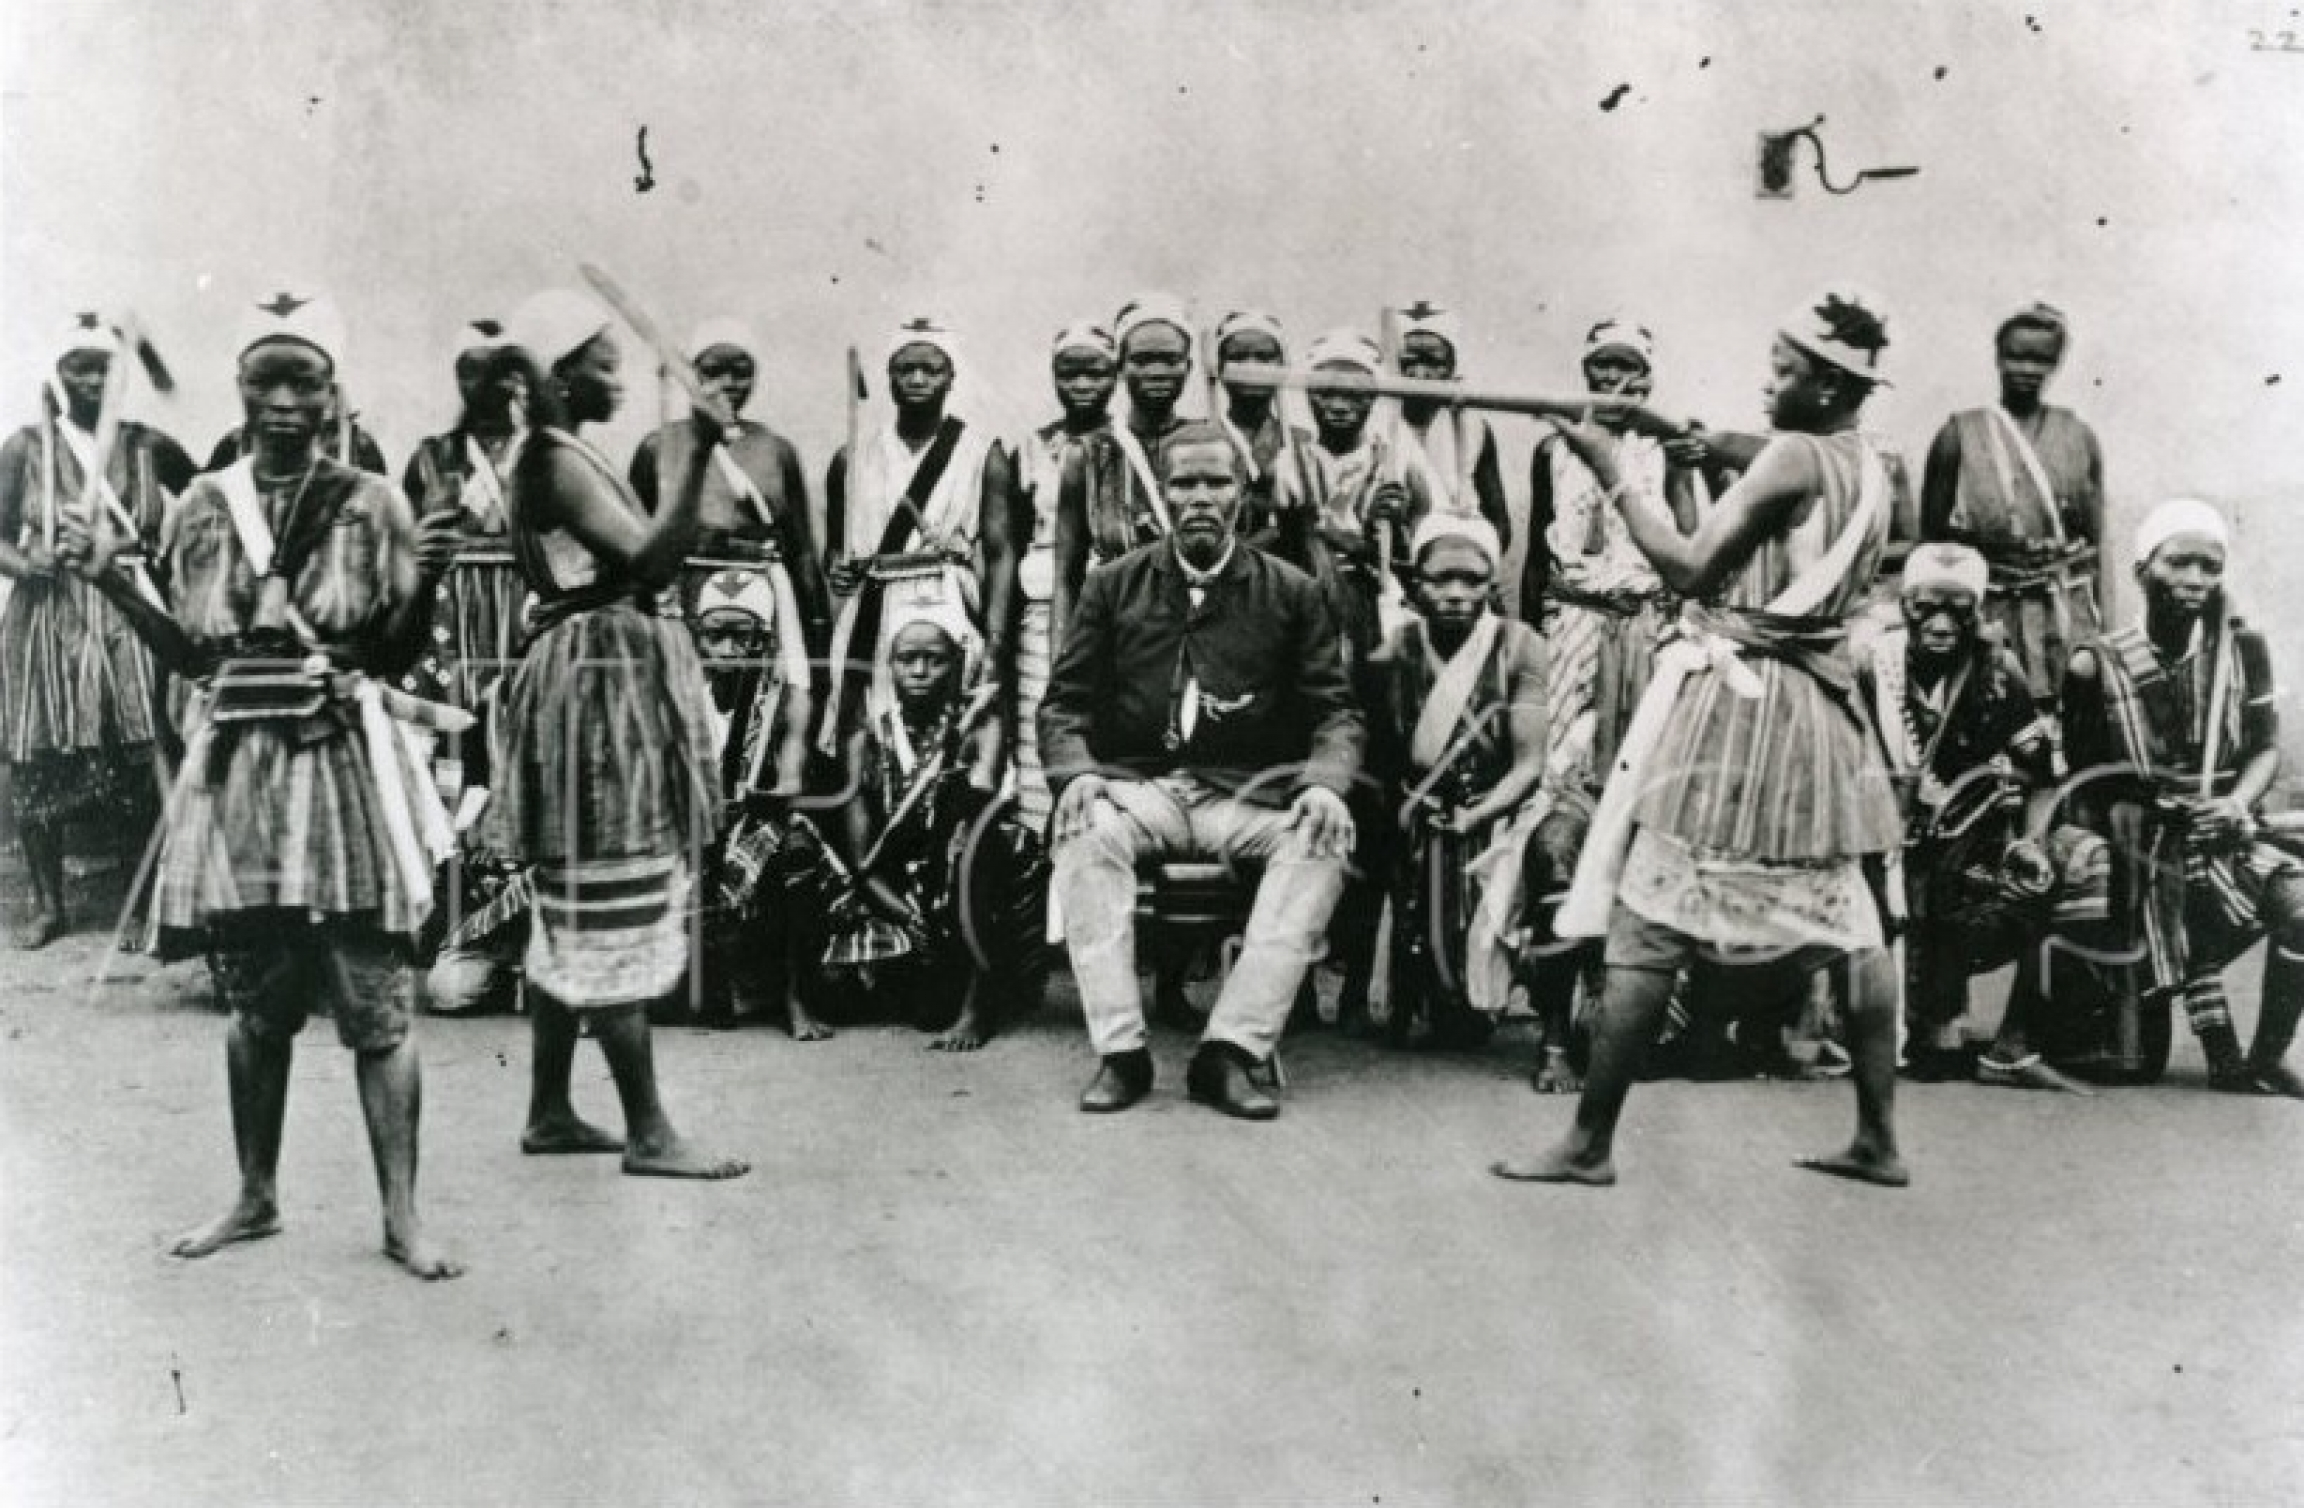 Female warriors of the Kingdom of Dahomey